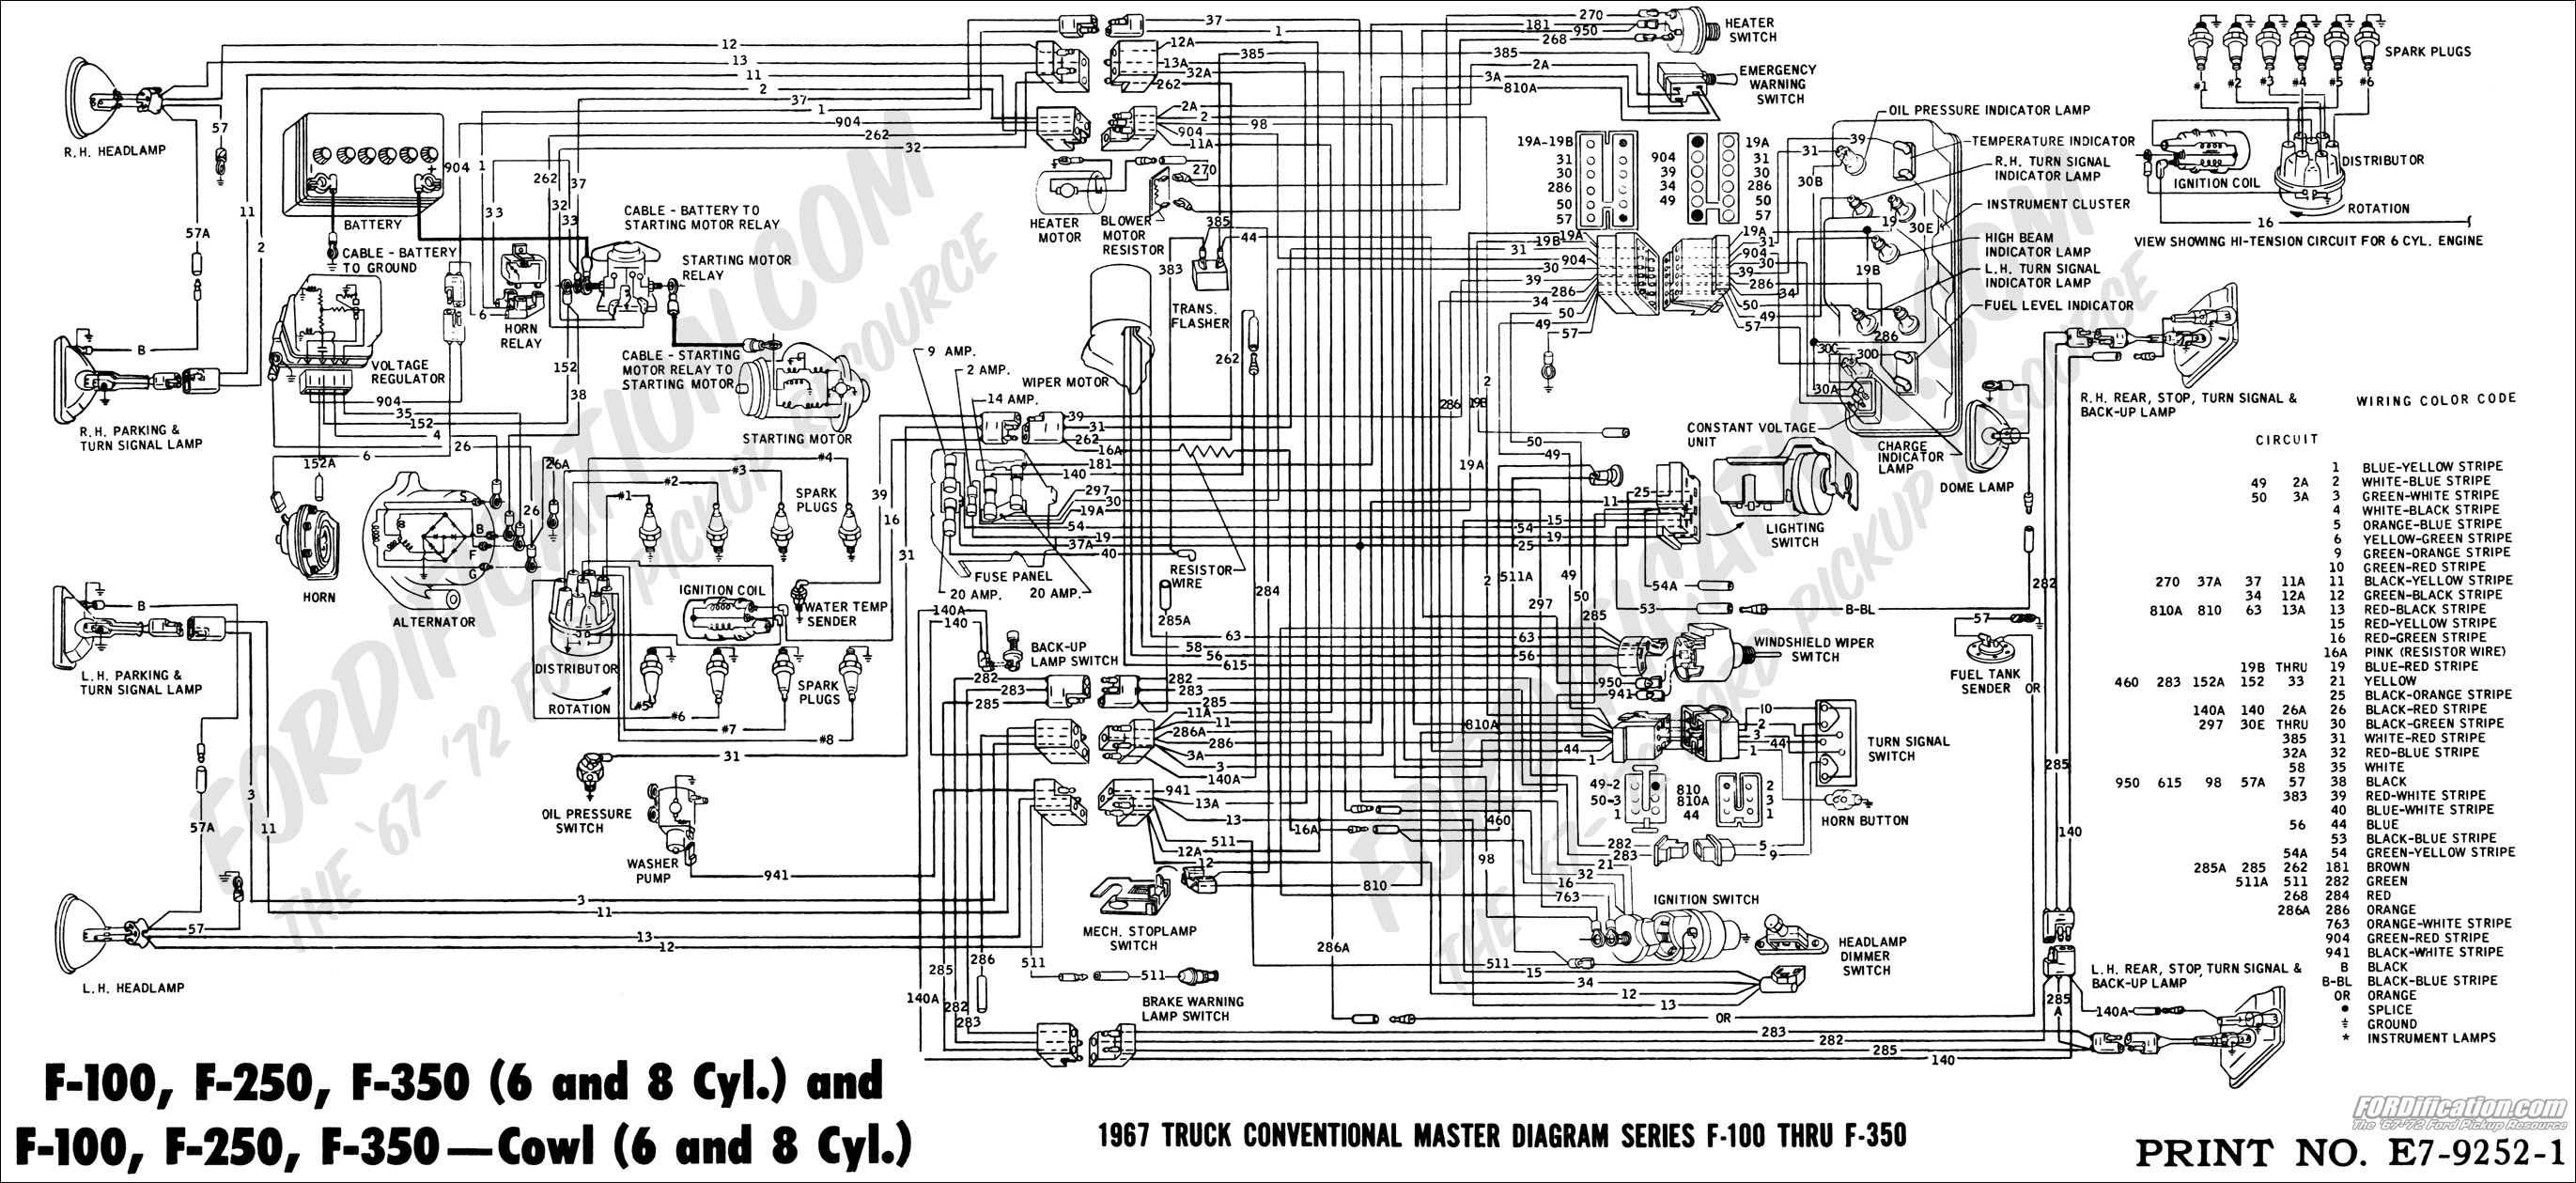 2006 Ford F450 Wiring Diagrams Opinions About Wiring Diagram \u2022 96 F250  Wiring Diagram 89 Ford F250 Wiring Diagram